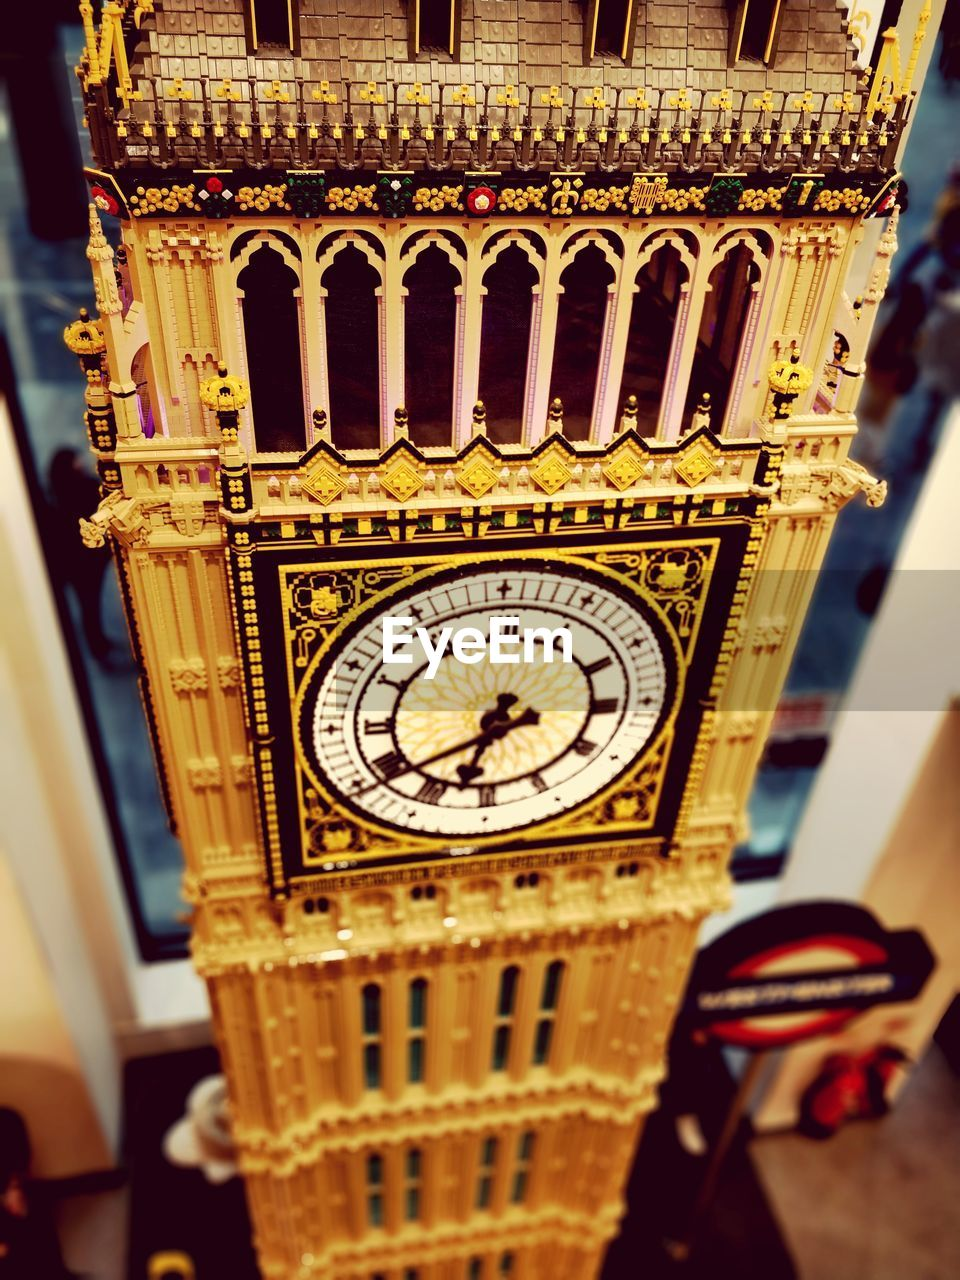 clock, time, architecture, built structure, building exterior, travel destinations, travel, building, low angle view, no people, tourism, tower, focus on foreground, city, clock tower, clock face, close-up, outdoors, day, ornate, minute hand